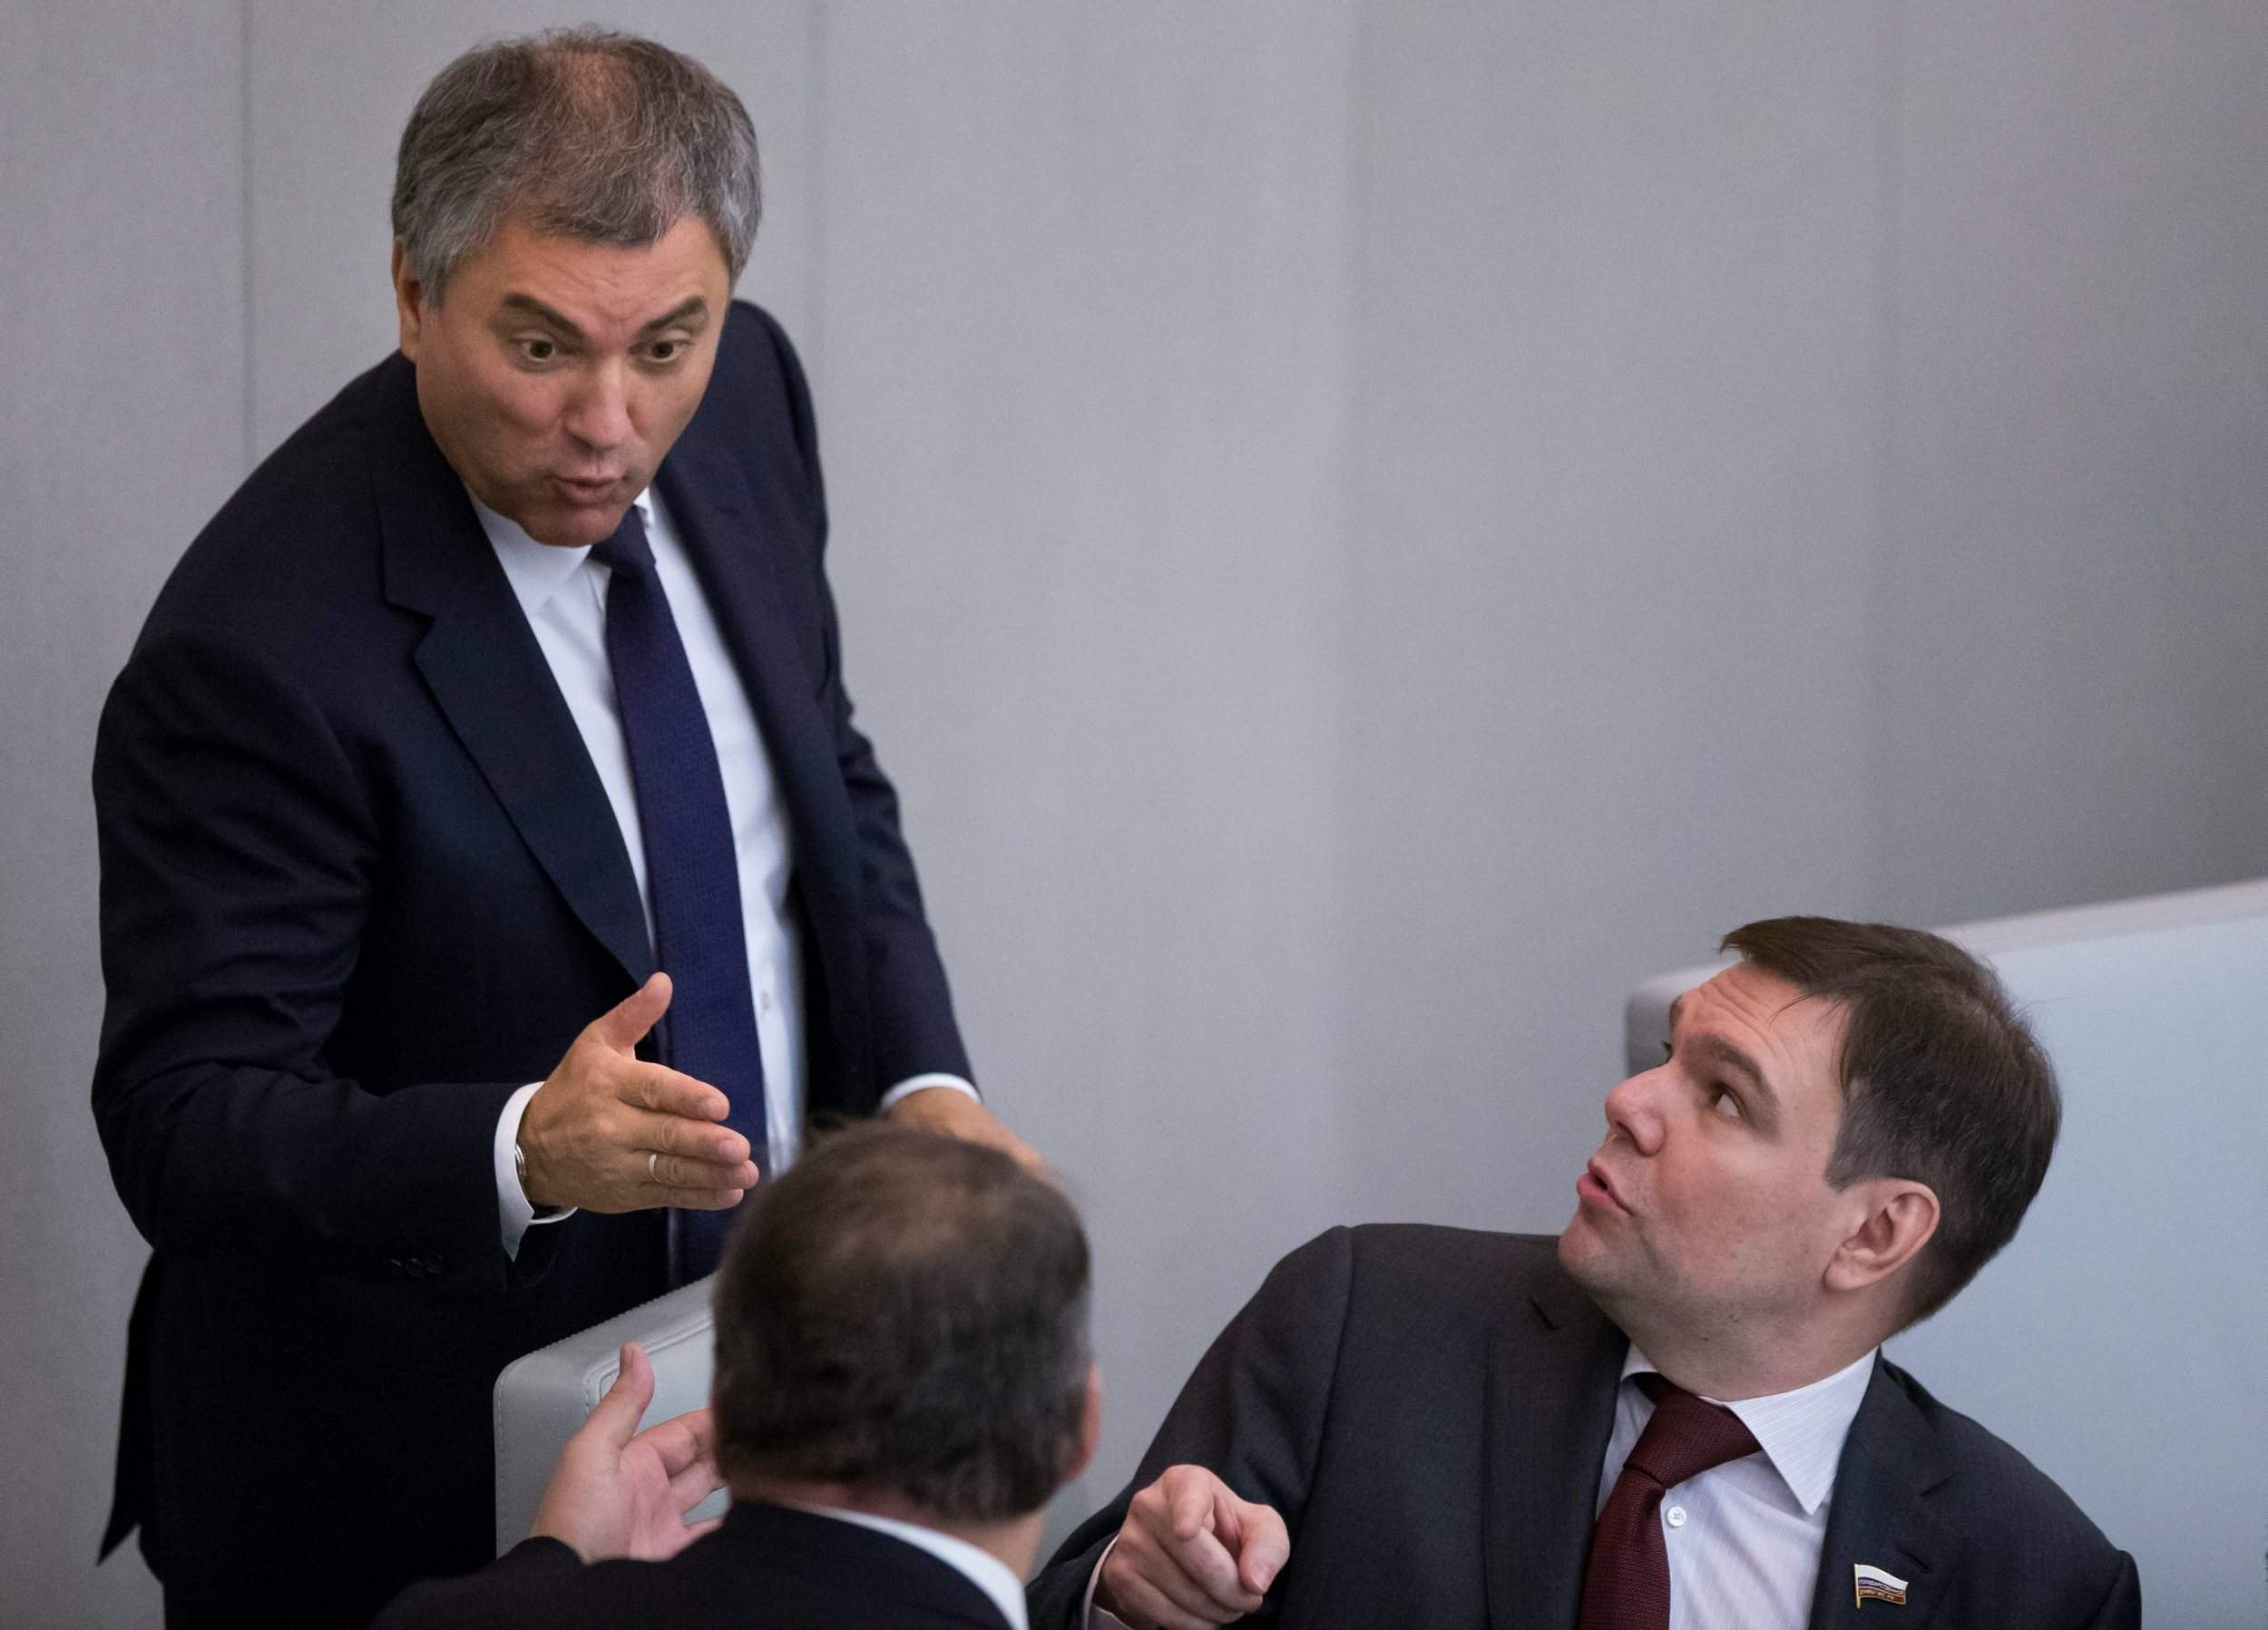 State Duma deputy denies that he was stuck in the hatch of the tank 09/14/2015 44